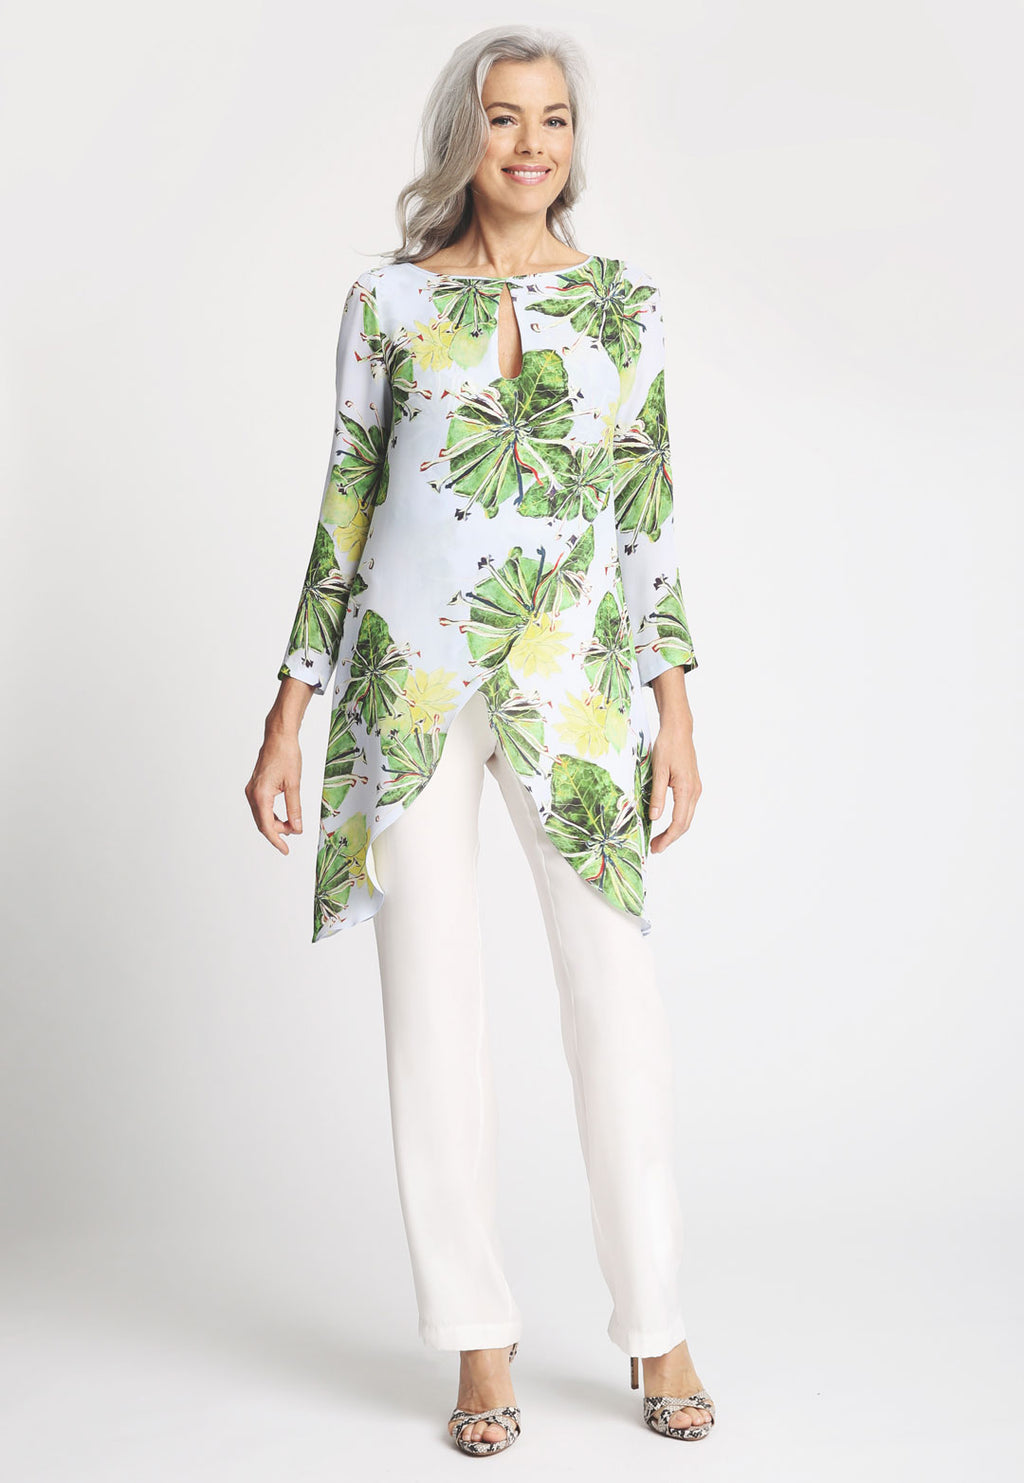 Model in asymmetrical three quarter sleeve blouse with a keyhole and white pant